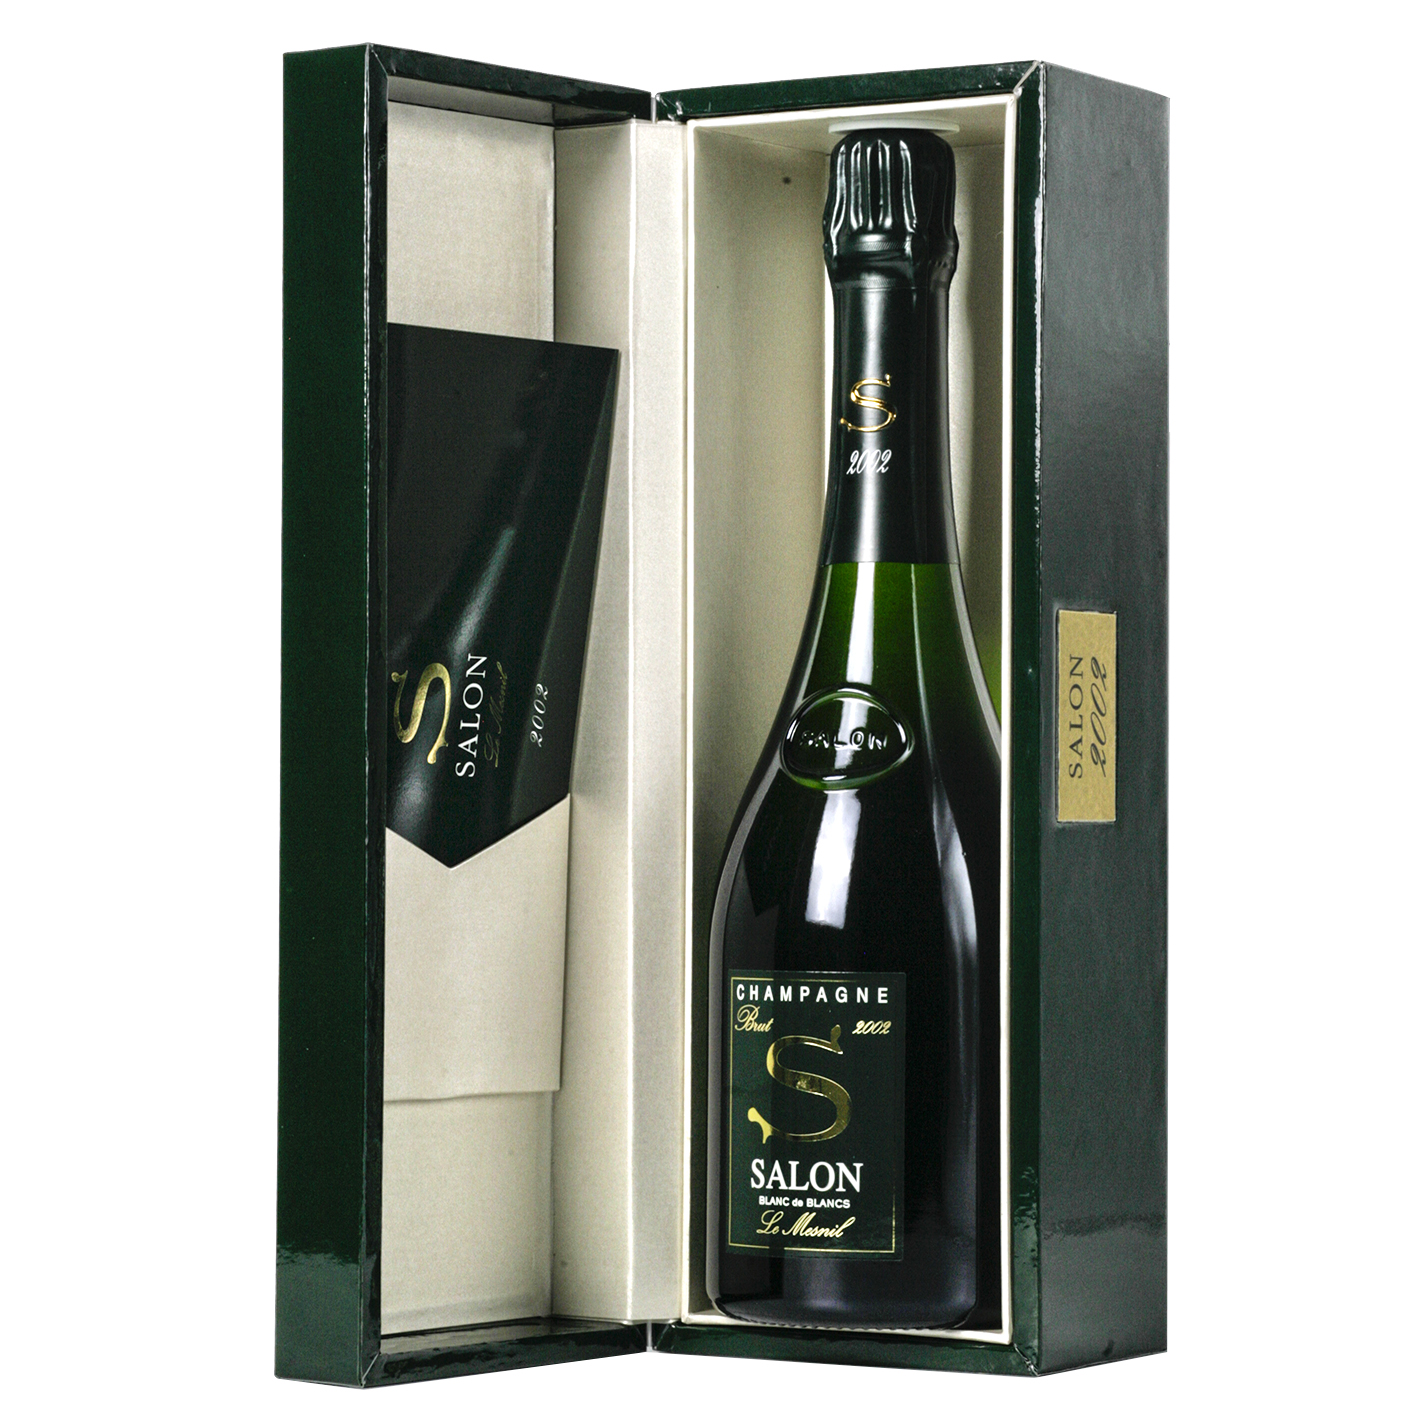 Salon Champagne Blanc de Blancs Le Mesnil 2002 Box - Enotic.it